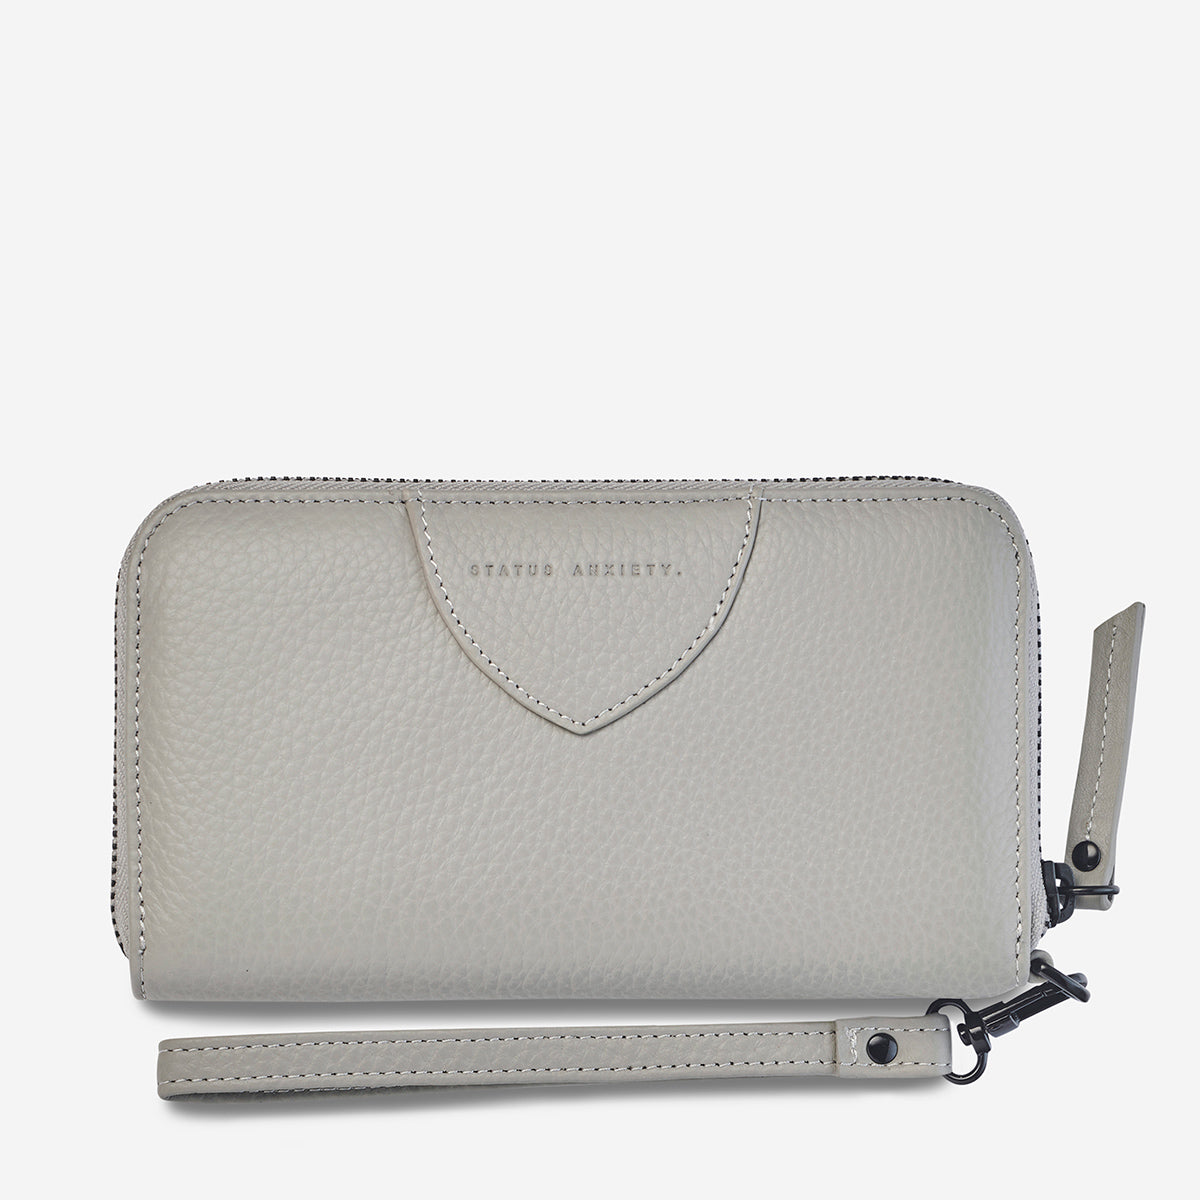 Status Anxiety Moving On Women's Leather Wallet - Light Grey